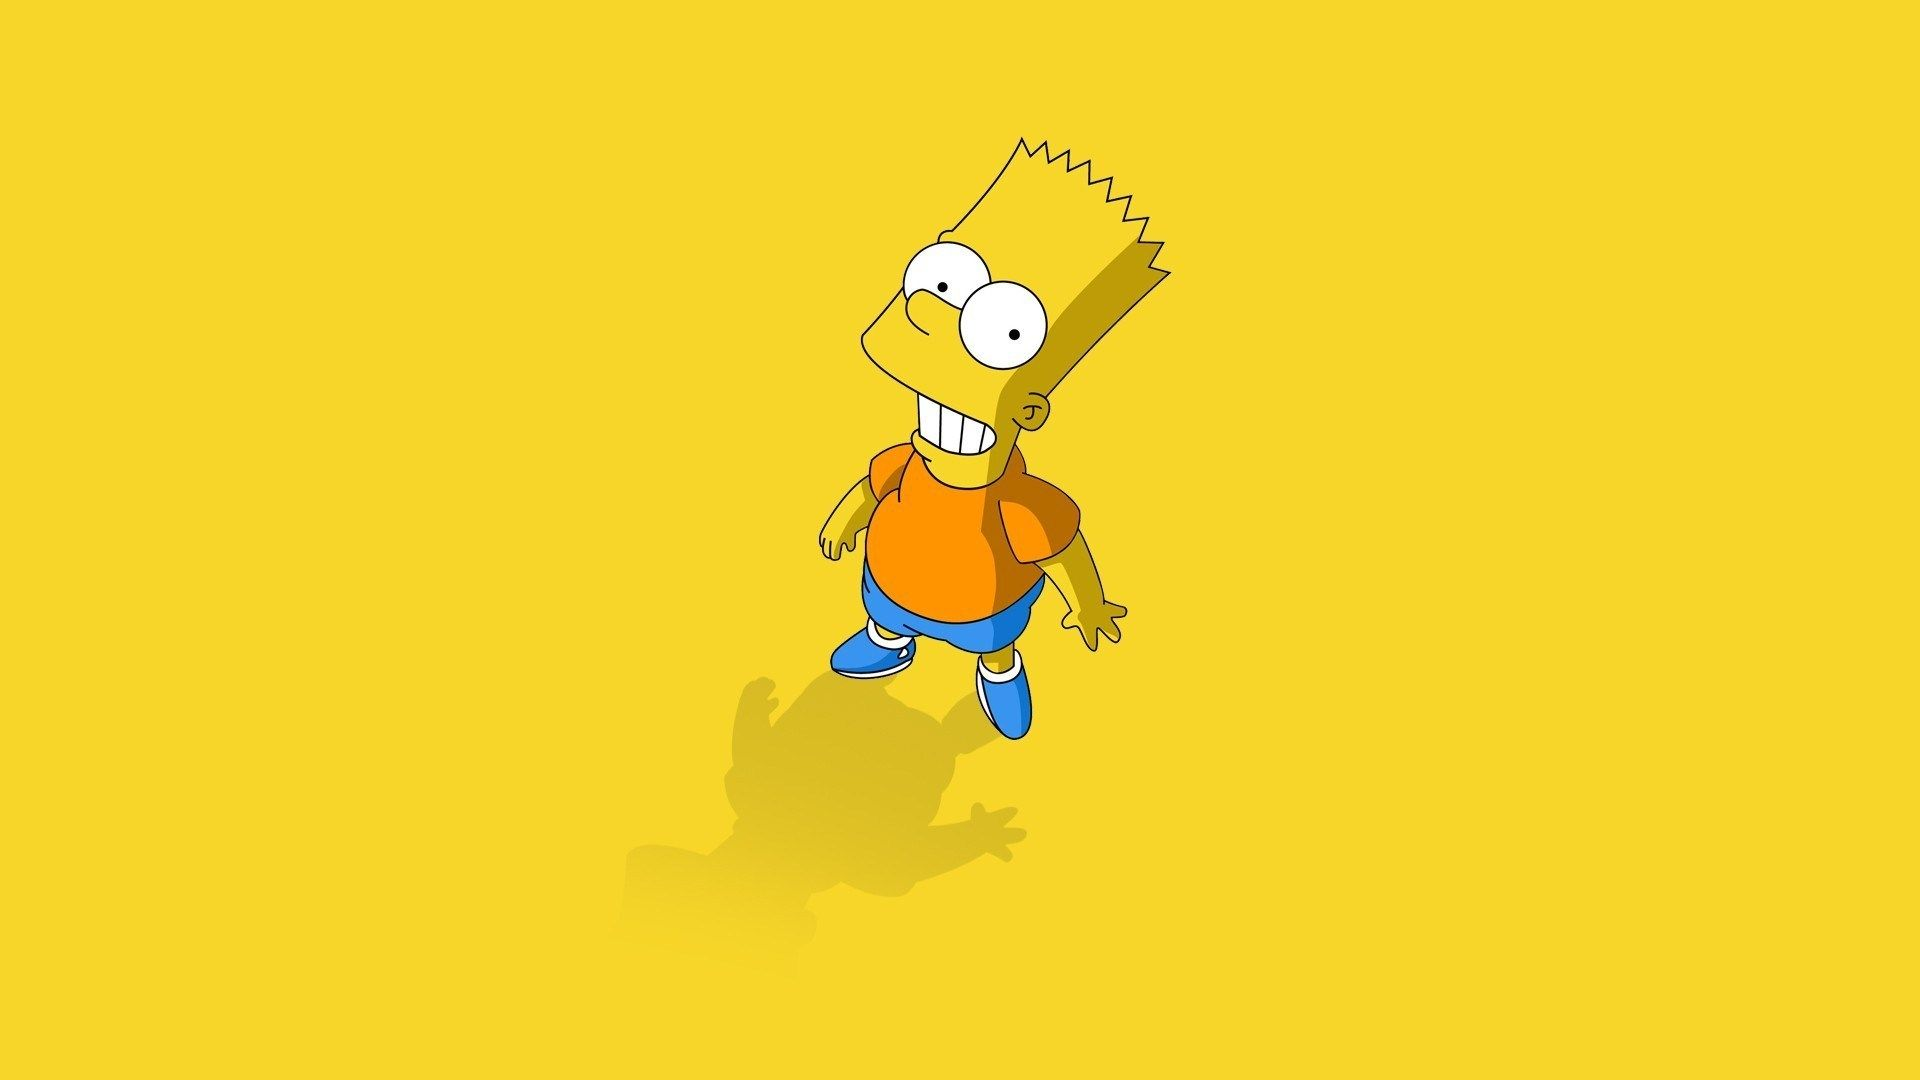 The Simpsons Family Wallpapers Hd Kartun